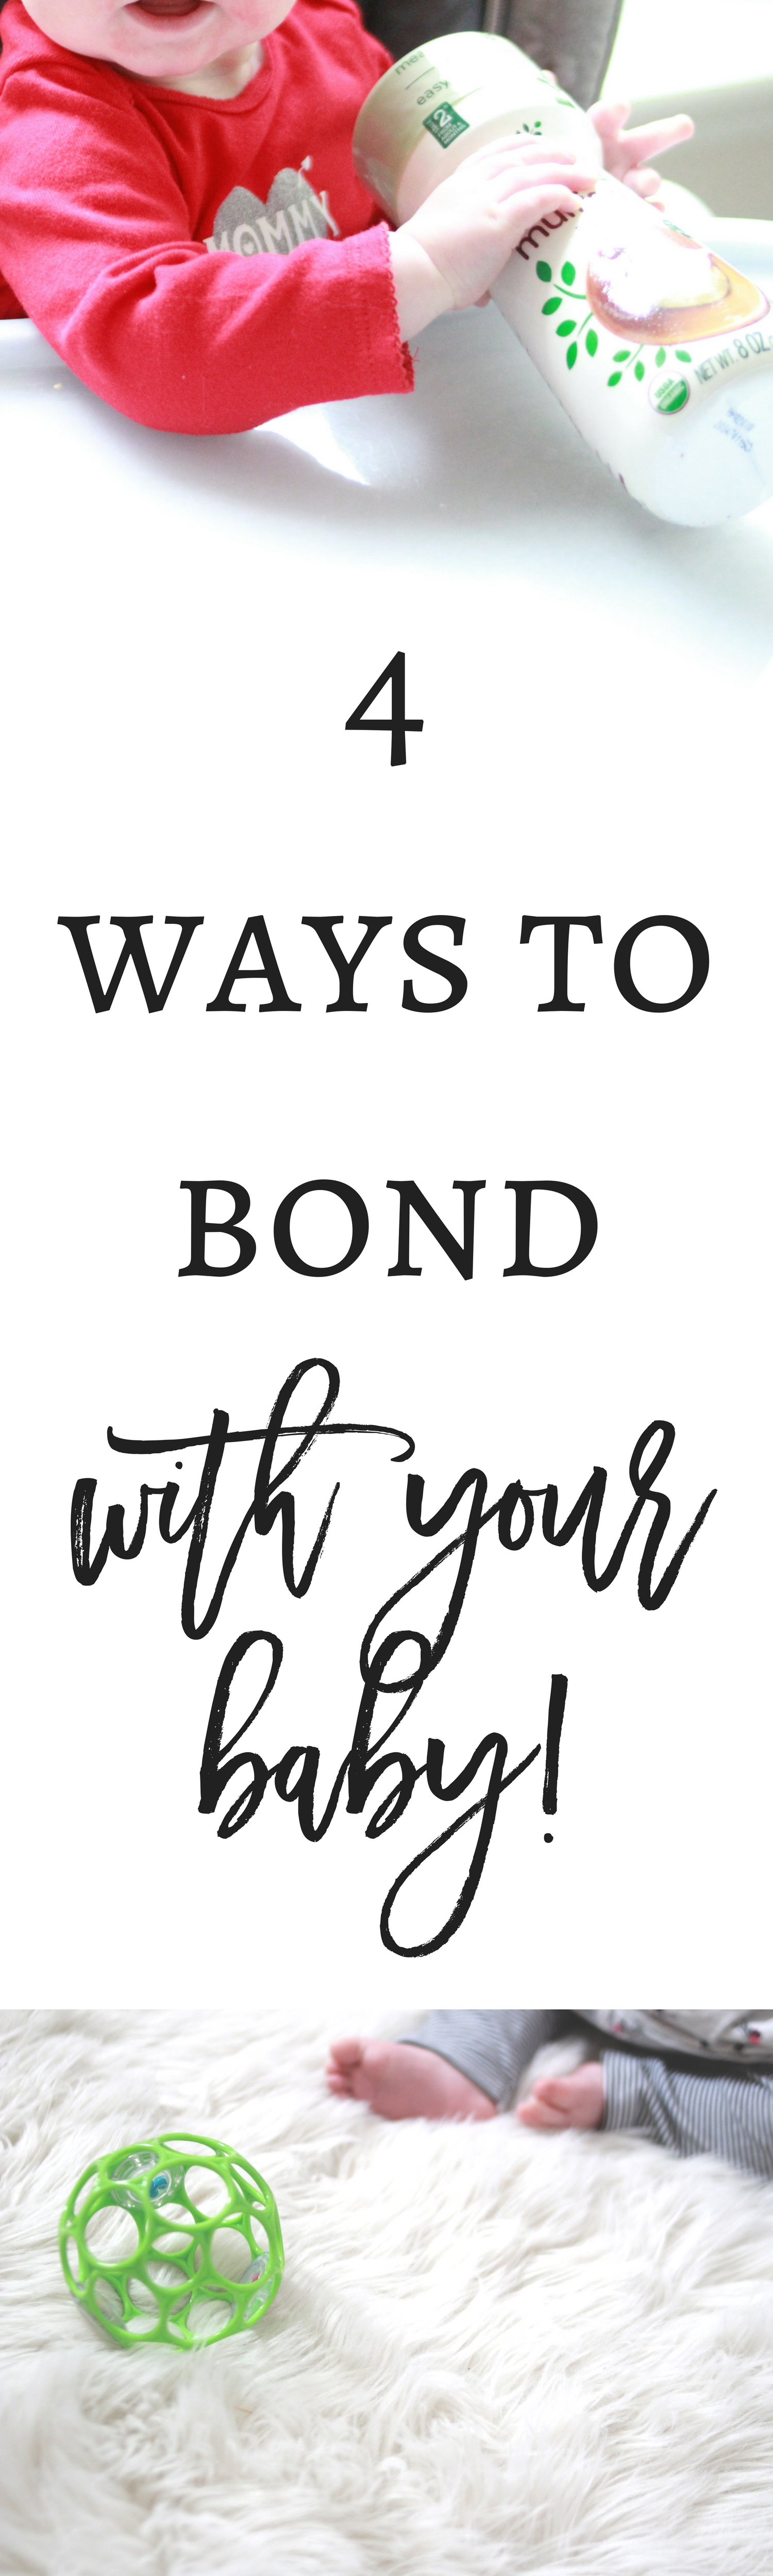 4 ways to bond with your baby